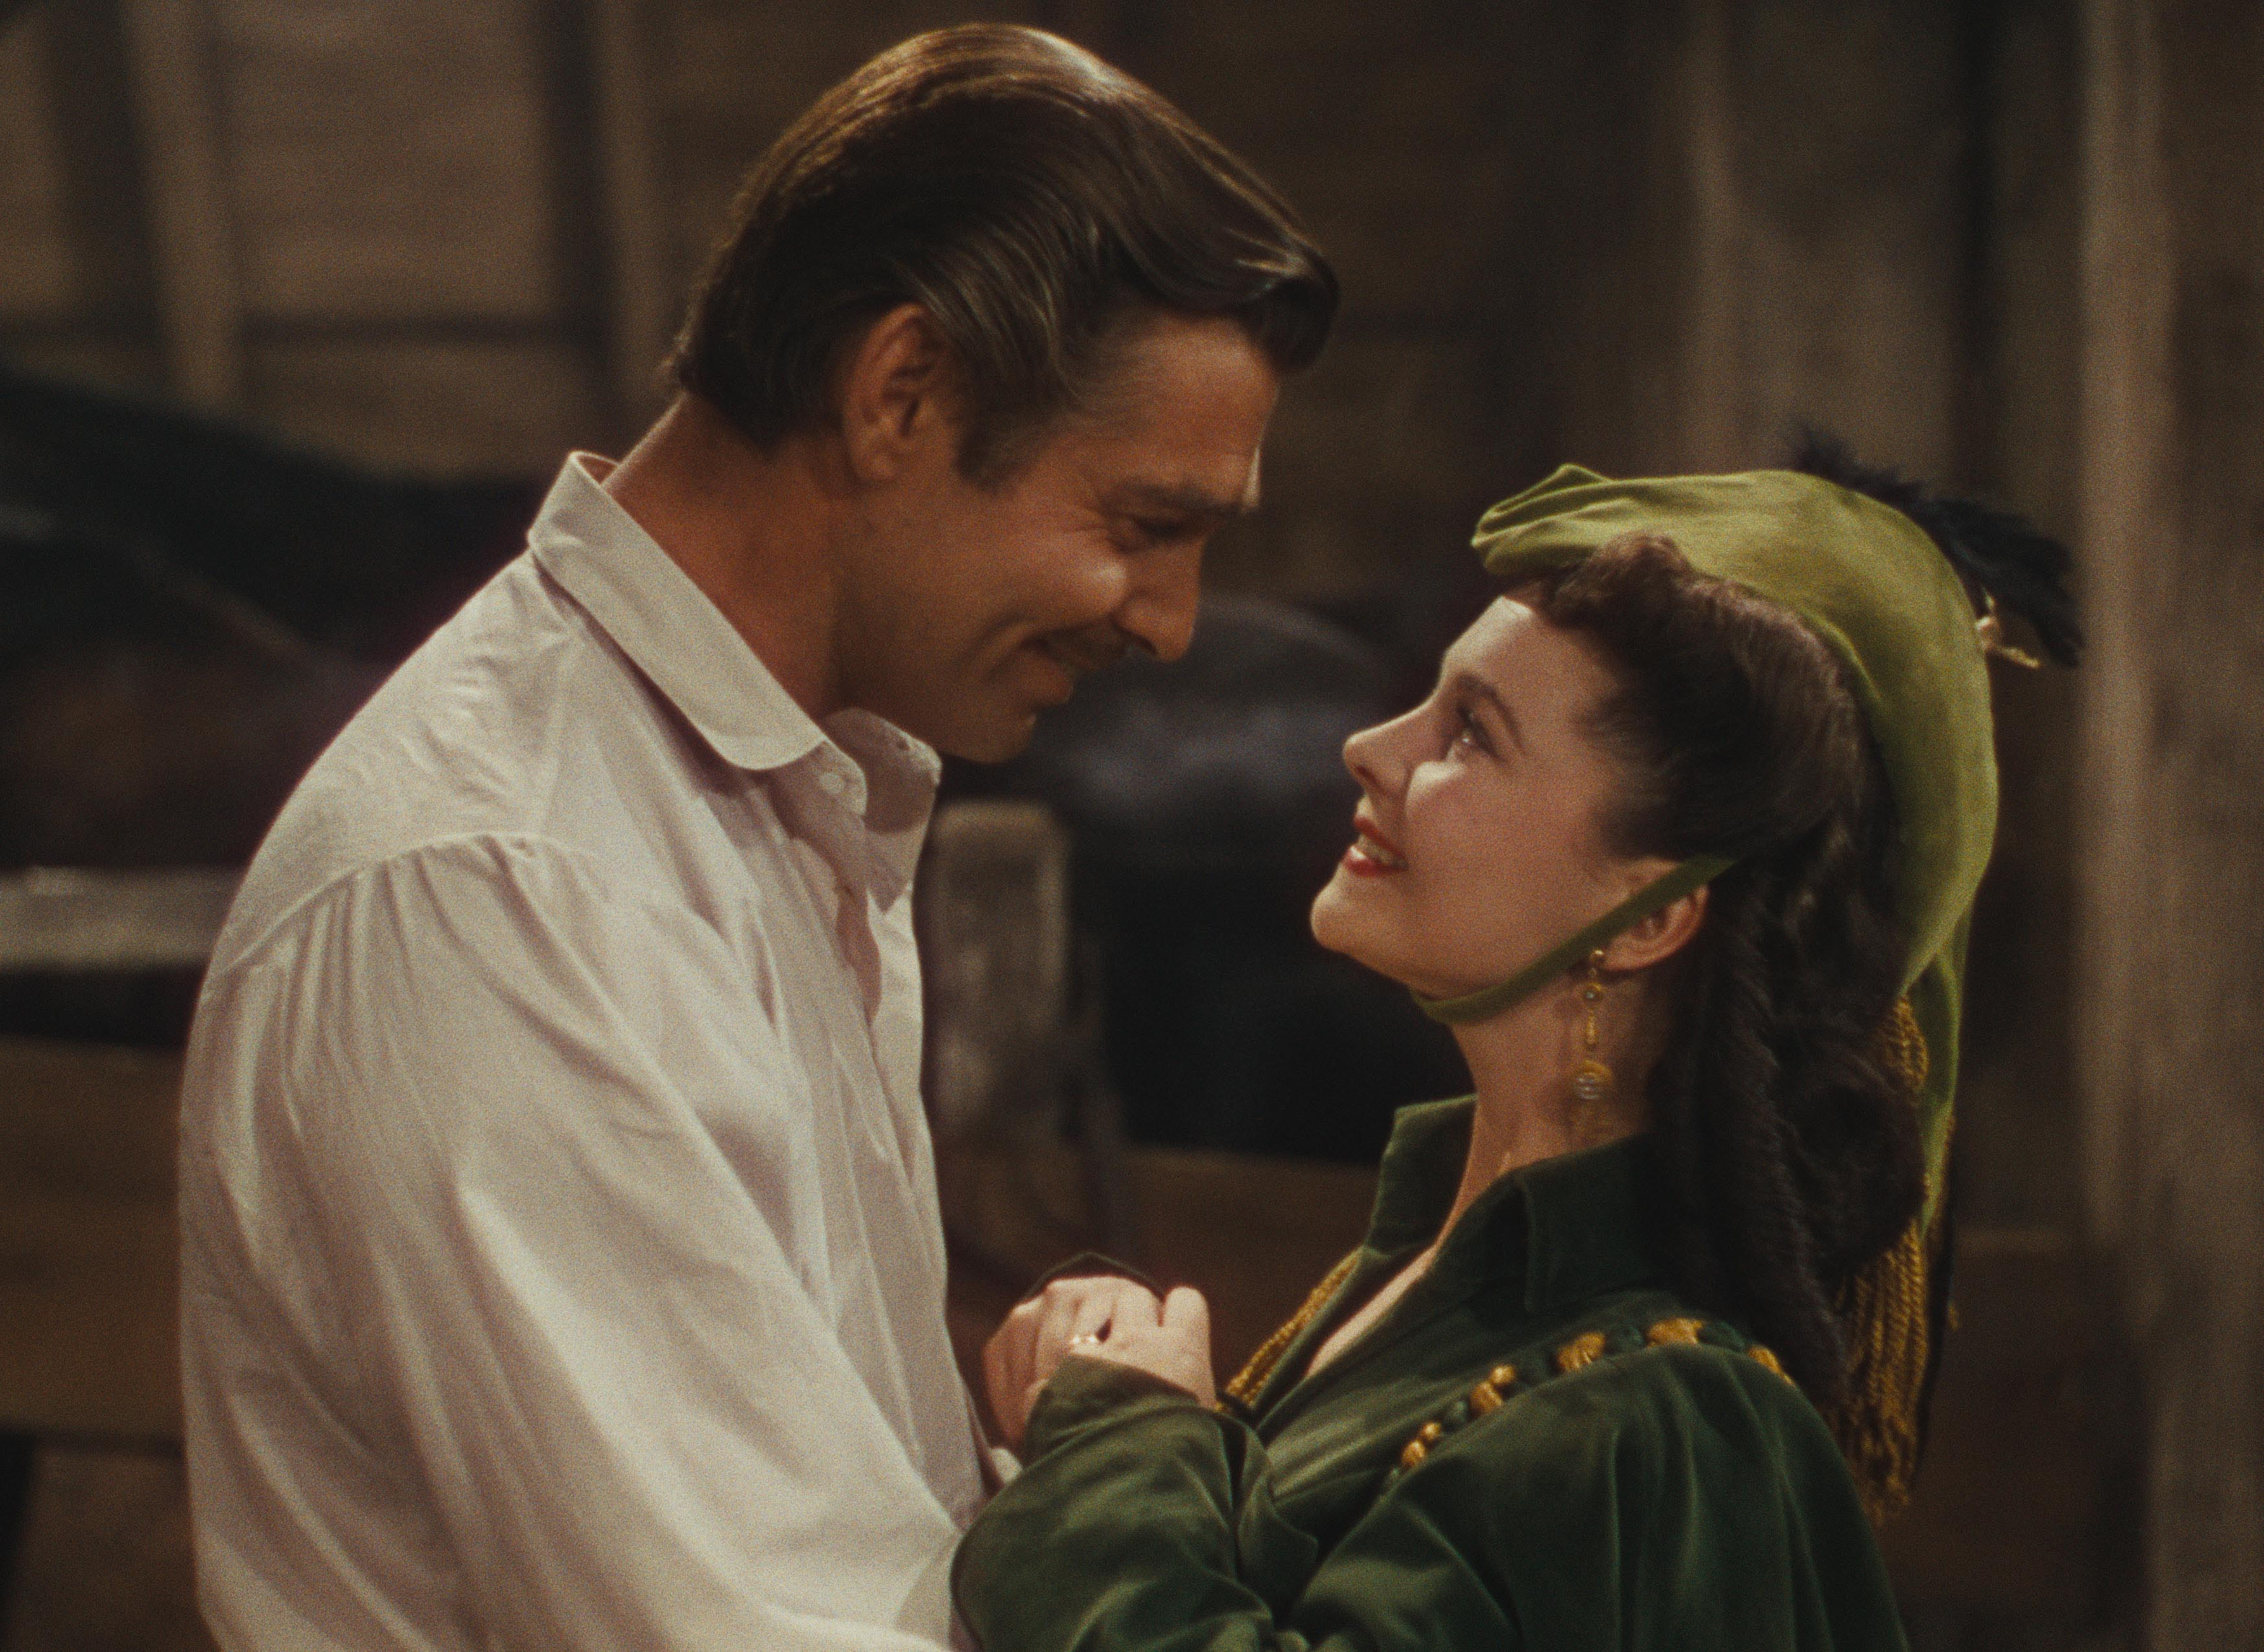 Dear Donald Trump: Scarlett O'Hara and Rhett Butler have retired